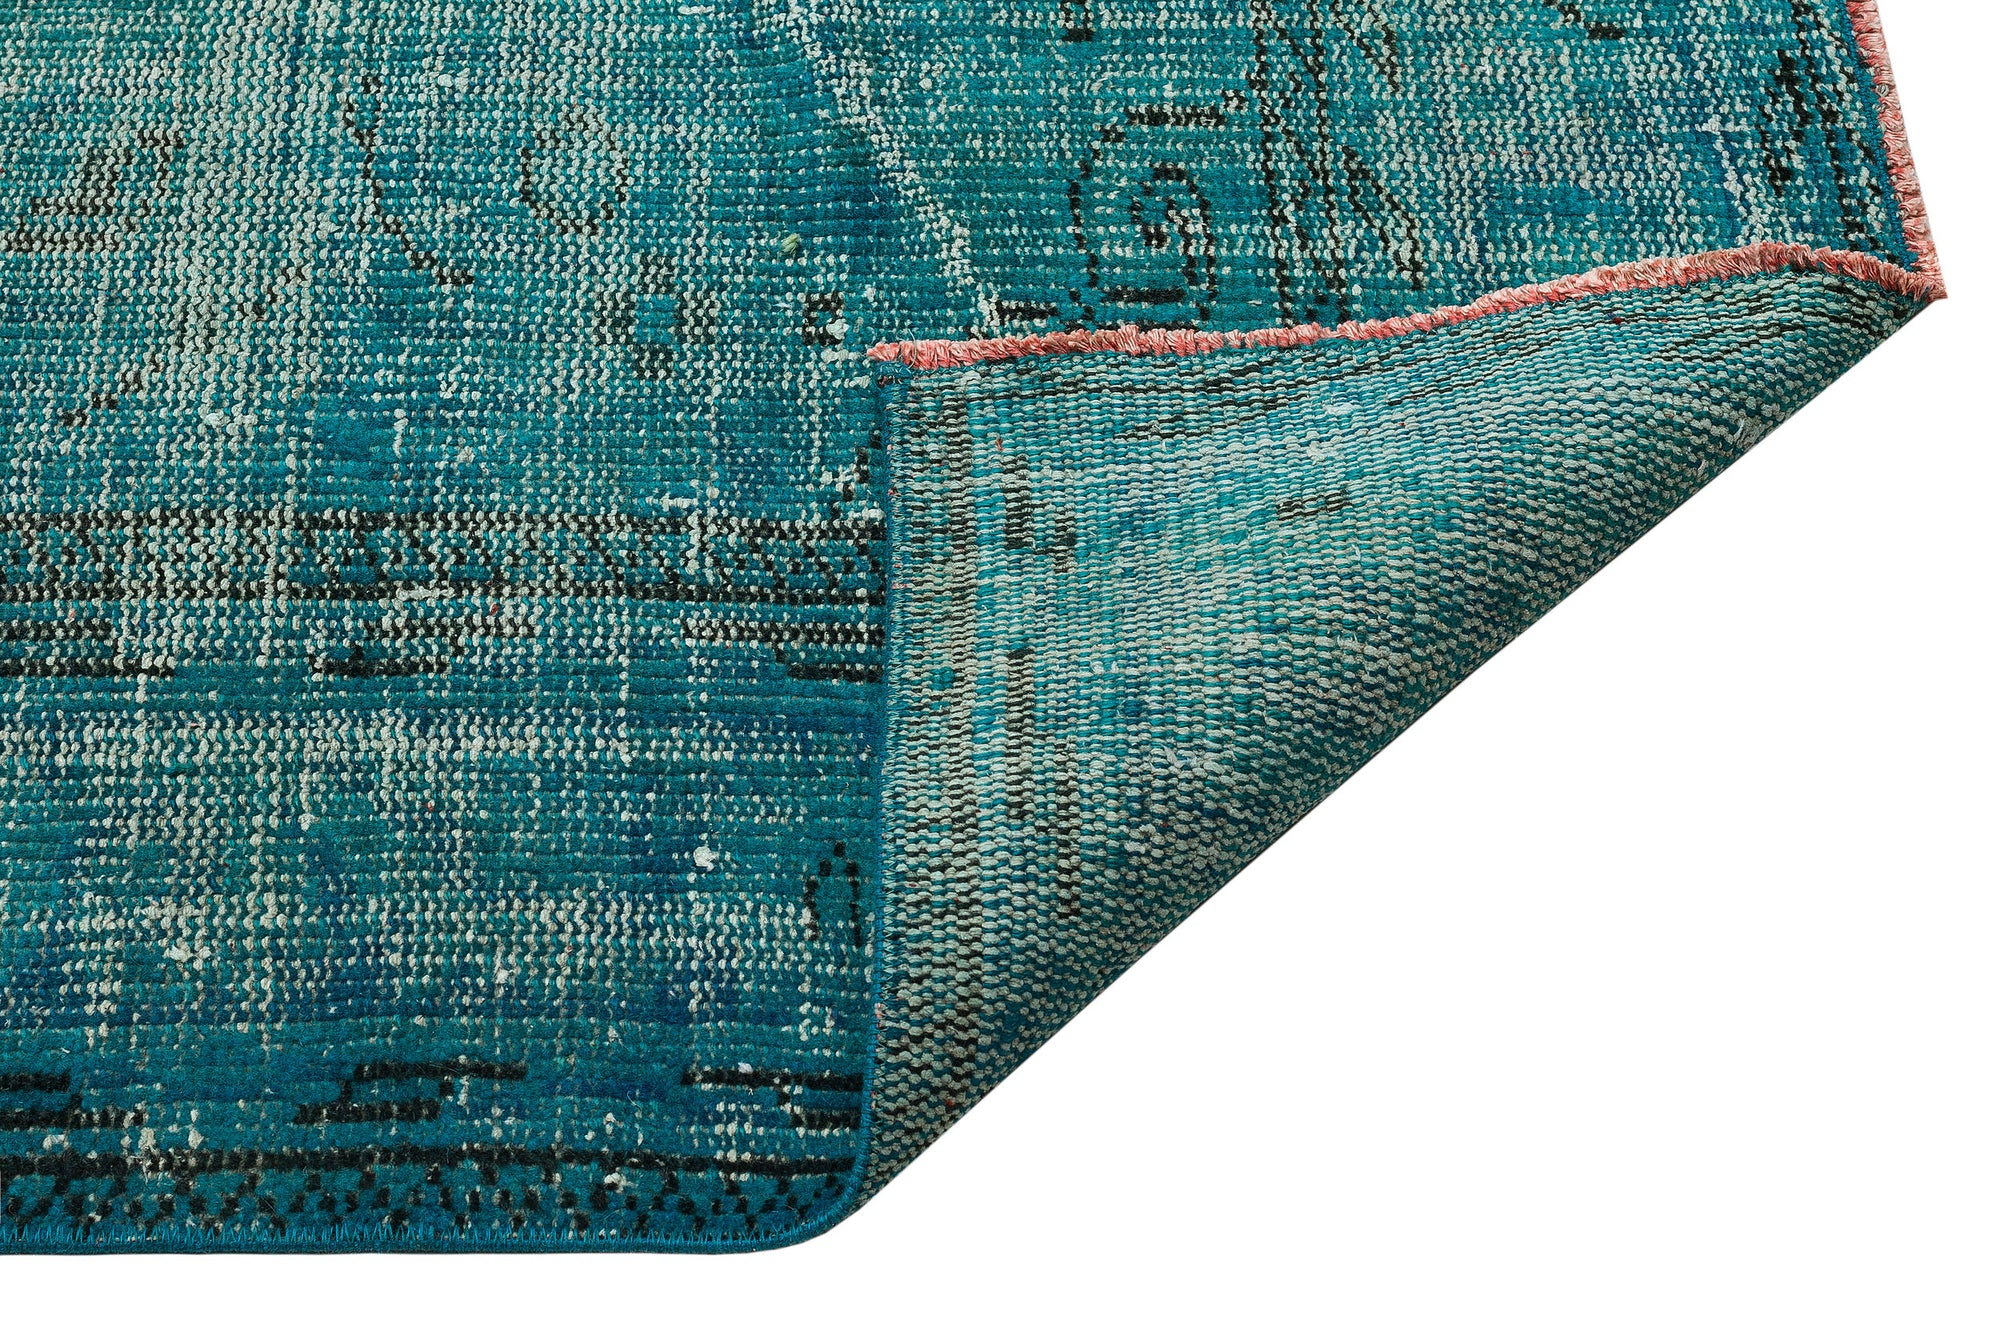 Turquoise  Over Dyed Vintage Rug 5'11'' x 9'2'' ft 181 x 279 cm